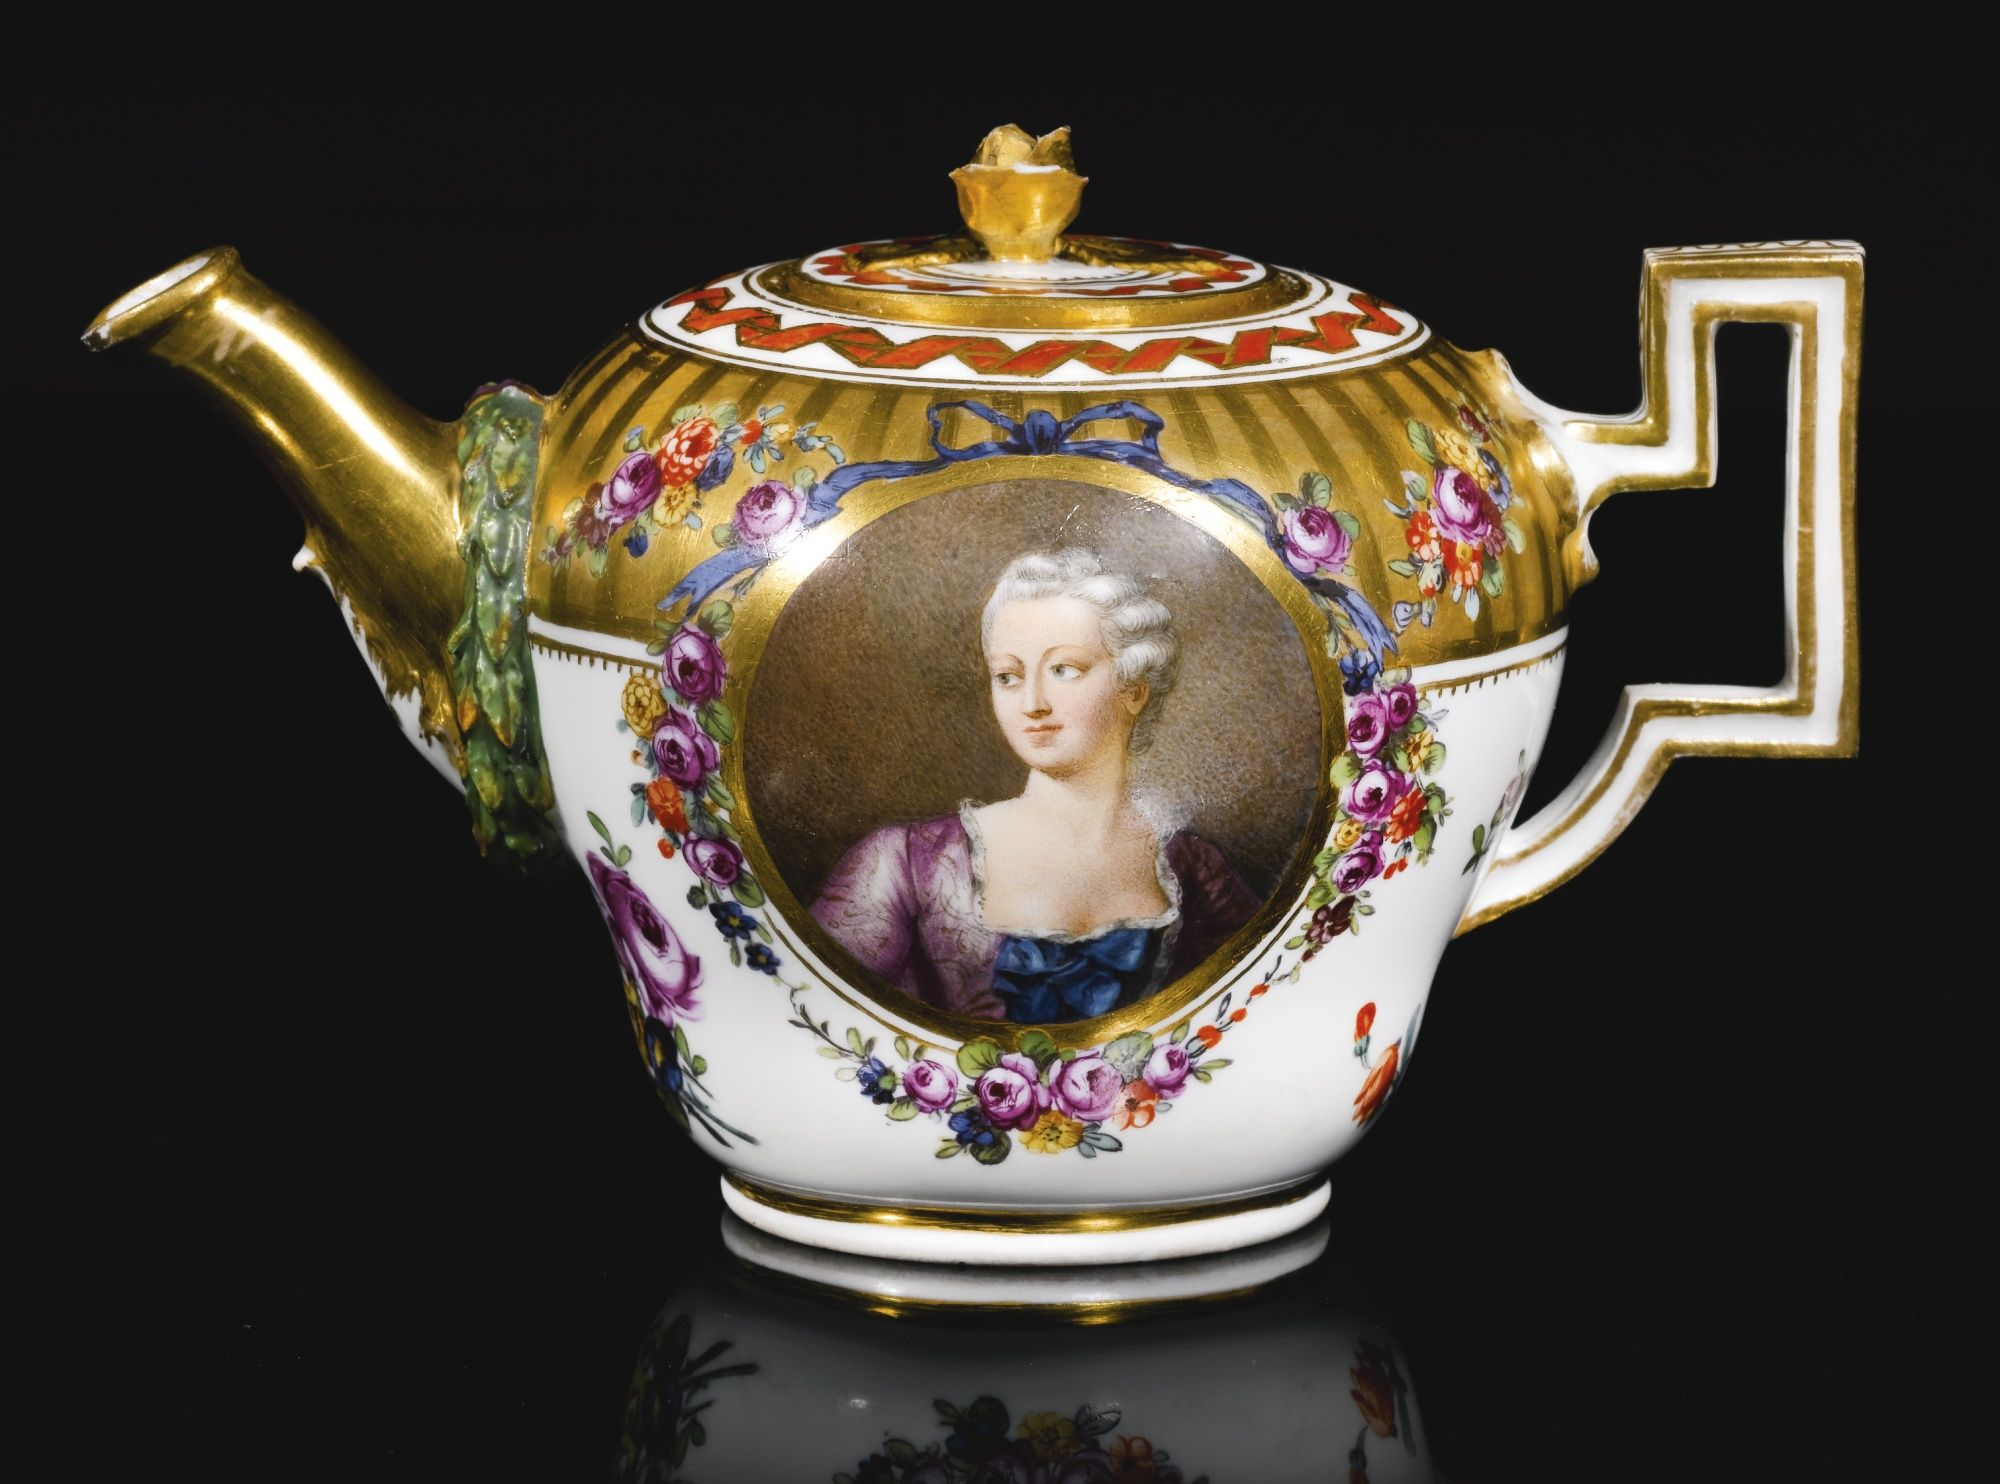 A MEISSEN MARCOLINI TEAPOT AND COVER, CIRCA 1800 of inverted pear shape, finely painted on the front with a shoulder-length portrait of a young woman, the reverse inscribed 'Si non caste, tamen caute' [If not with Integrity, nevertheless with caution] within floral frames, crossed swords and star mark in underglaze-blue, some restoration to handle.